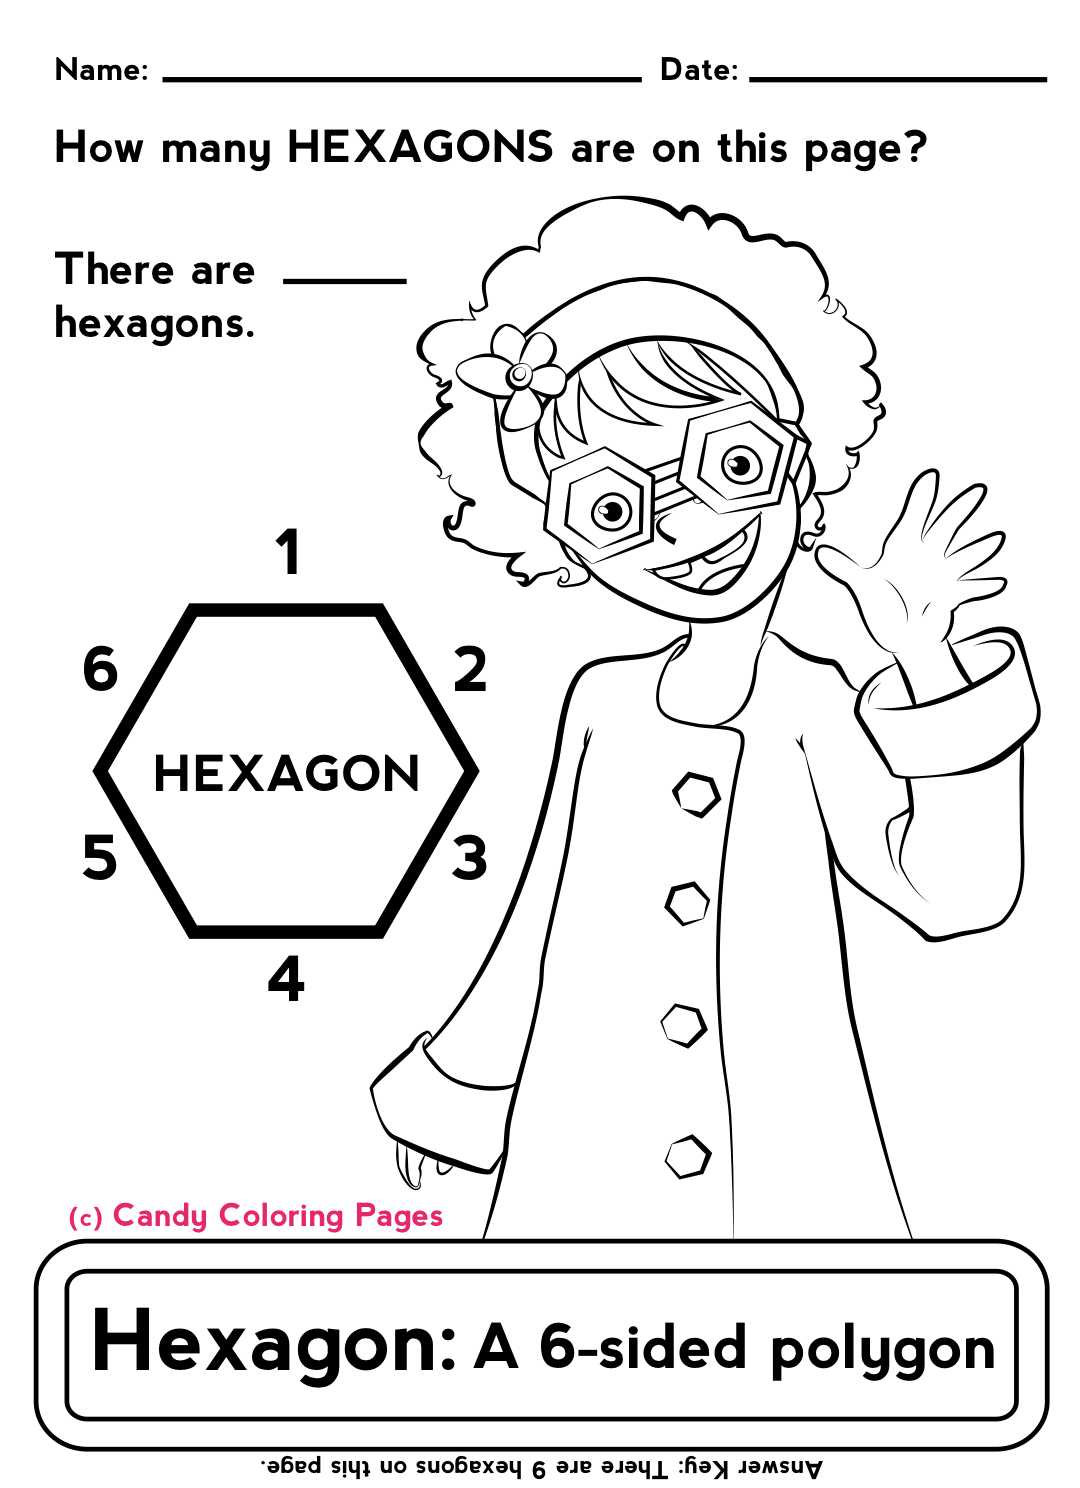 Coloring sheets with math problems - Polygons Hexagon Coloring Pages Math Worksheets